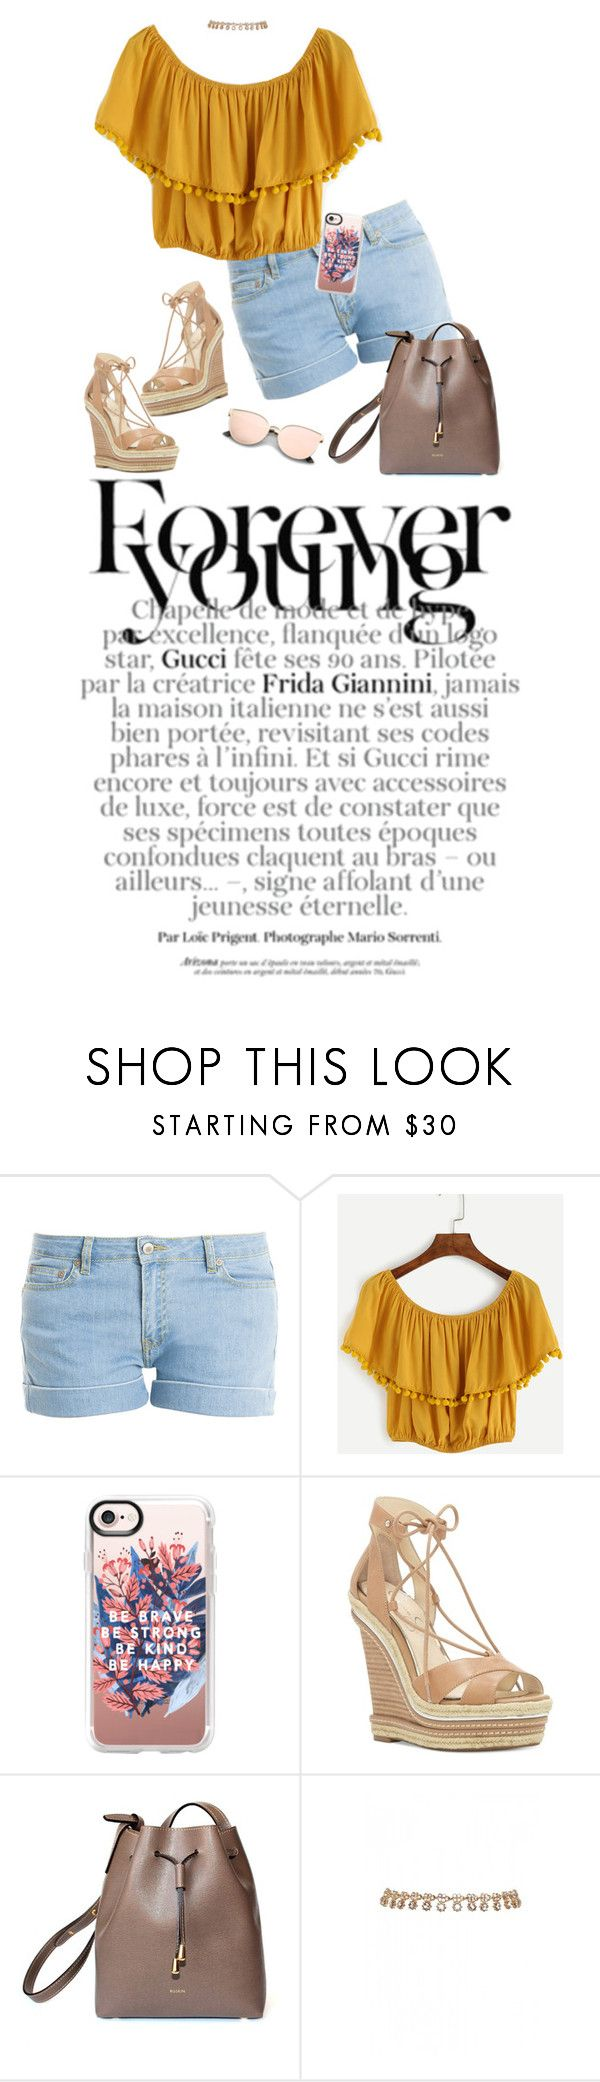 """""""Despacito..."""" by texas1226 ❤ liked on Polyvore featuring Paul & Joe, Casetify, Jessica Simpson and RUSKIN"""